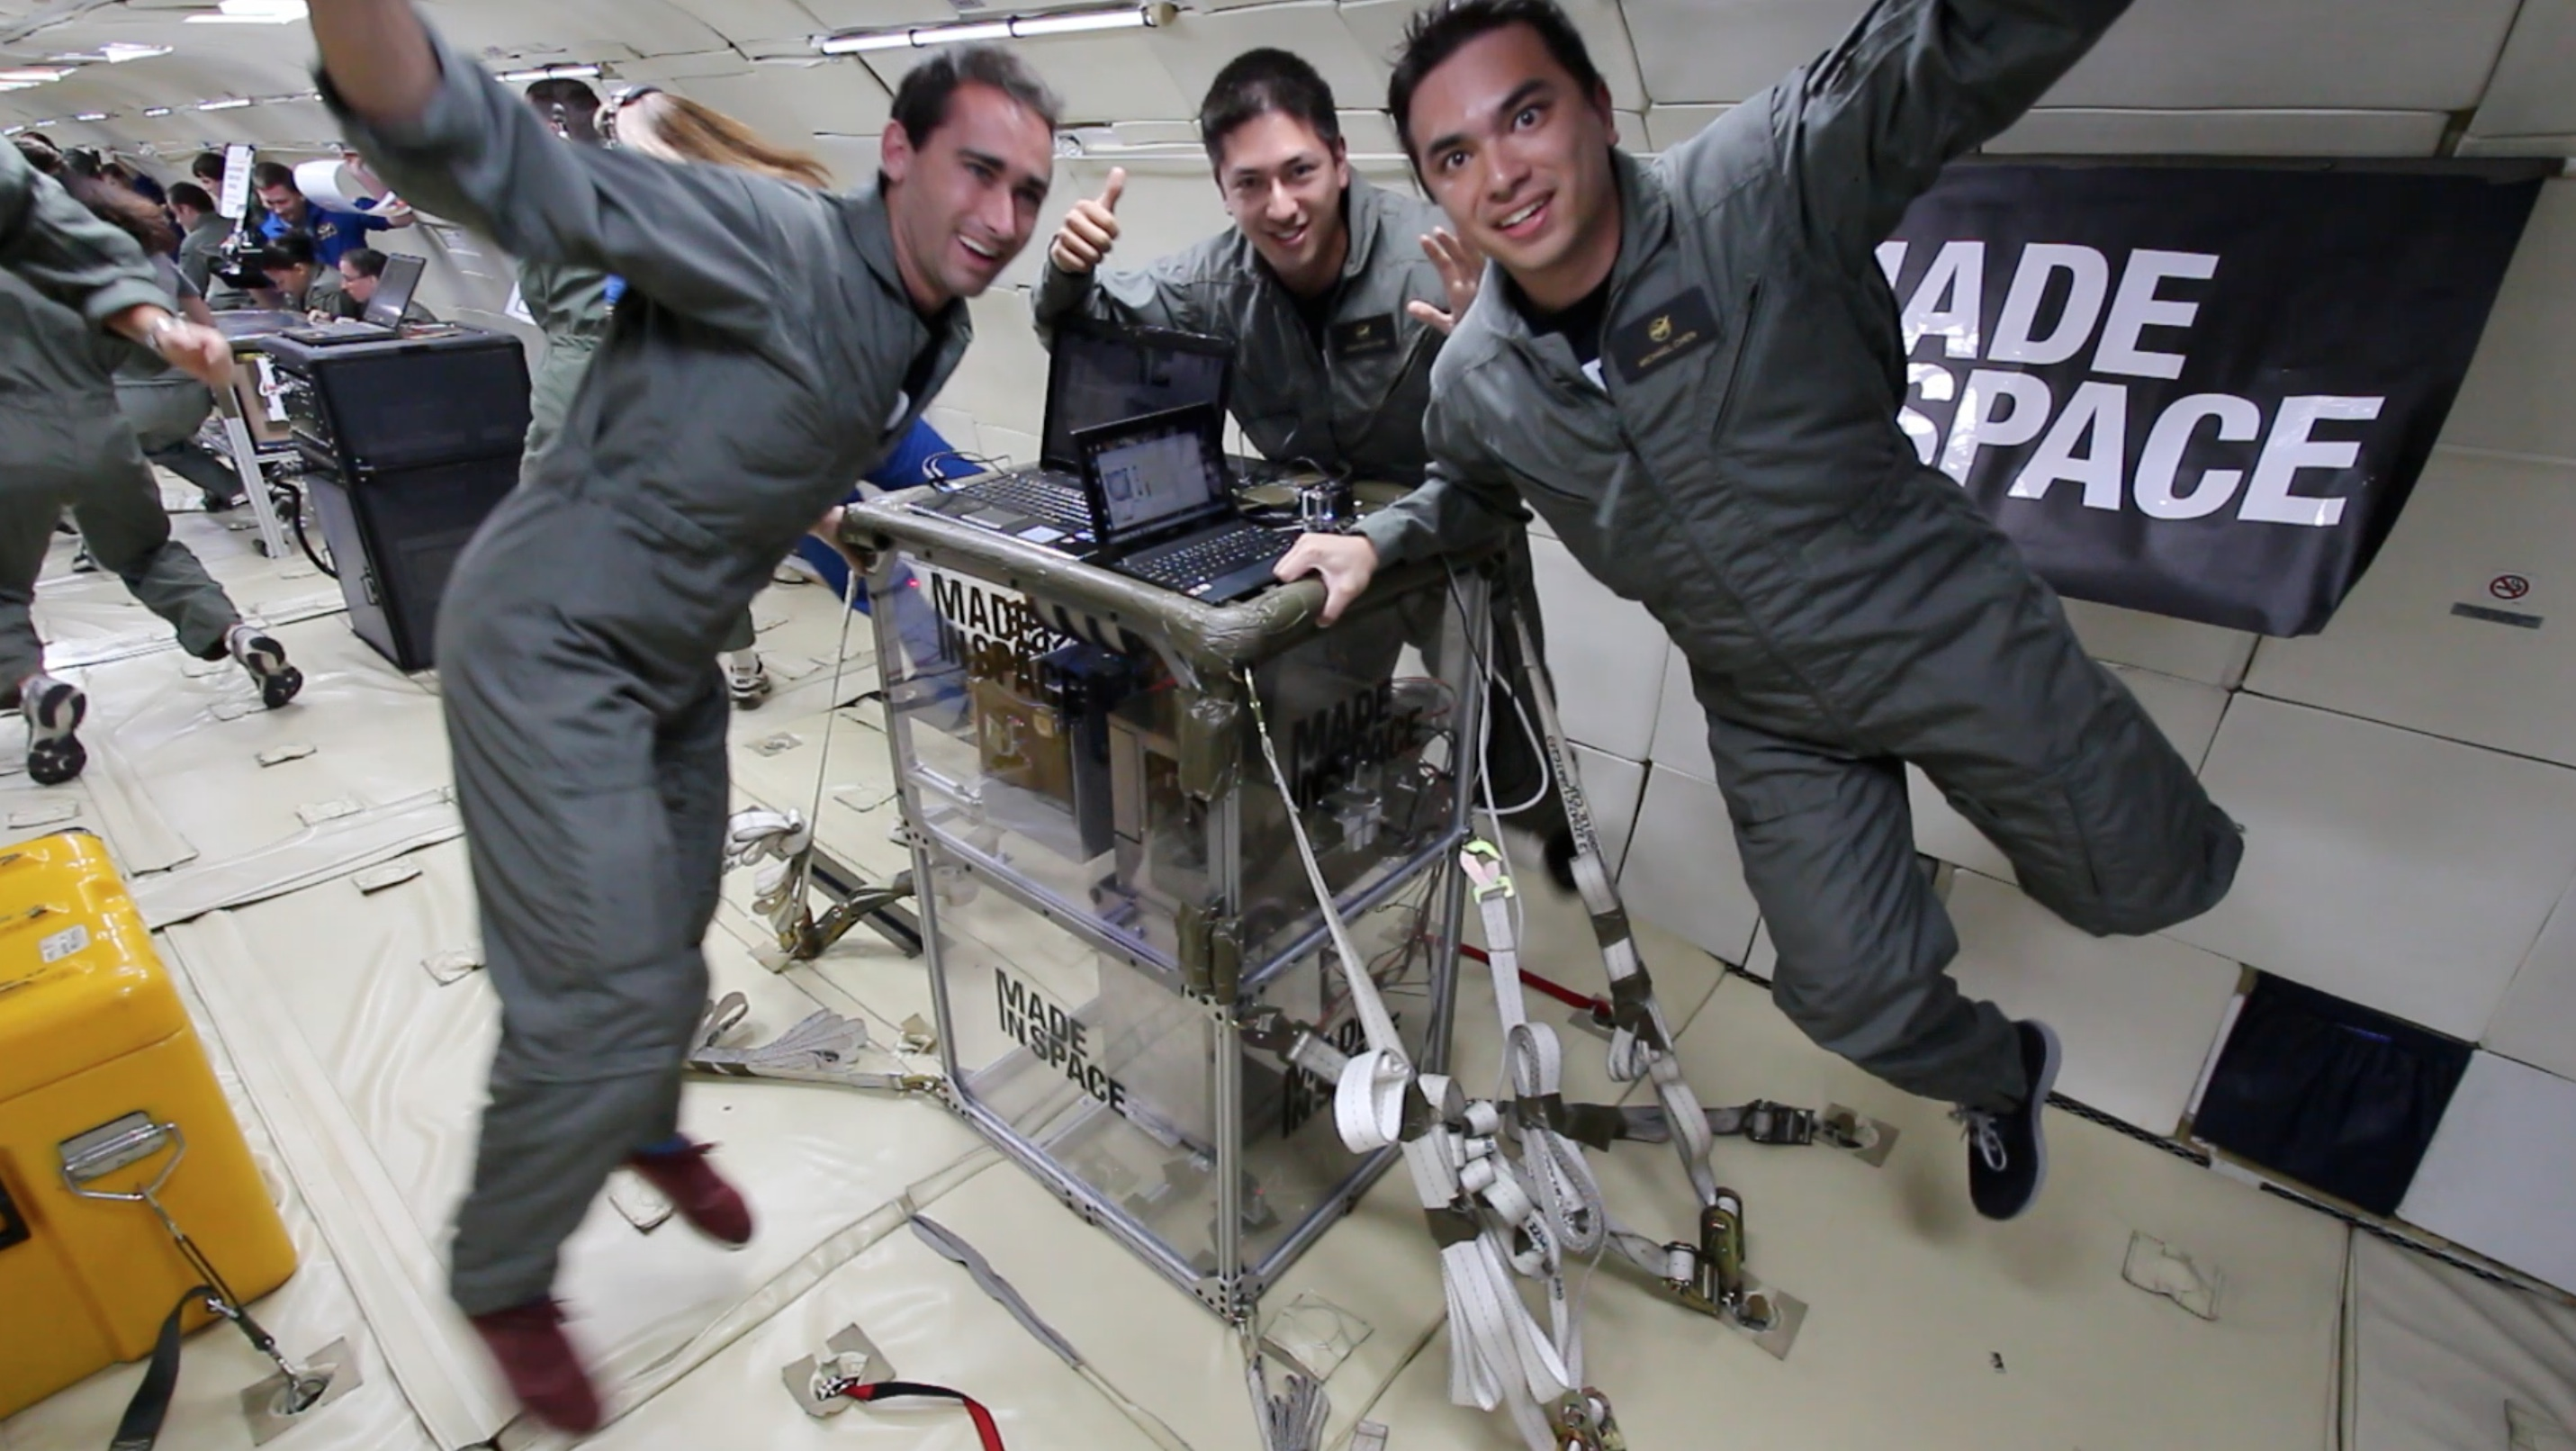 A test of the 3-D printer in a microgravity-like environment simulated on an airplane that flies parabolas. Credit: Made in Space